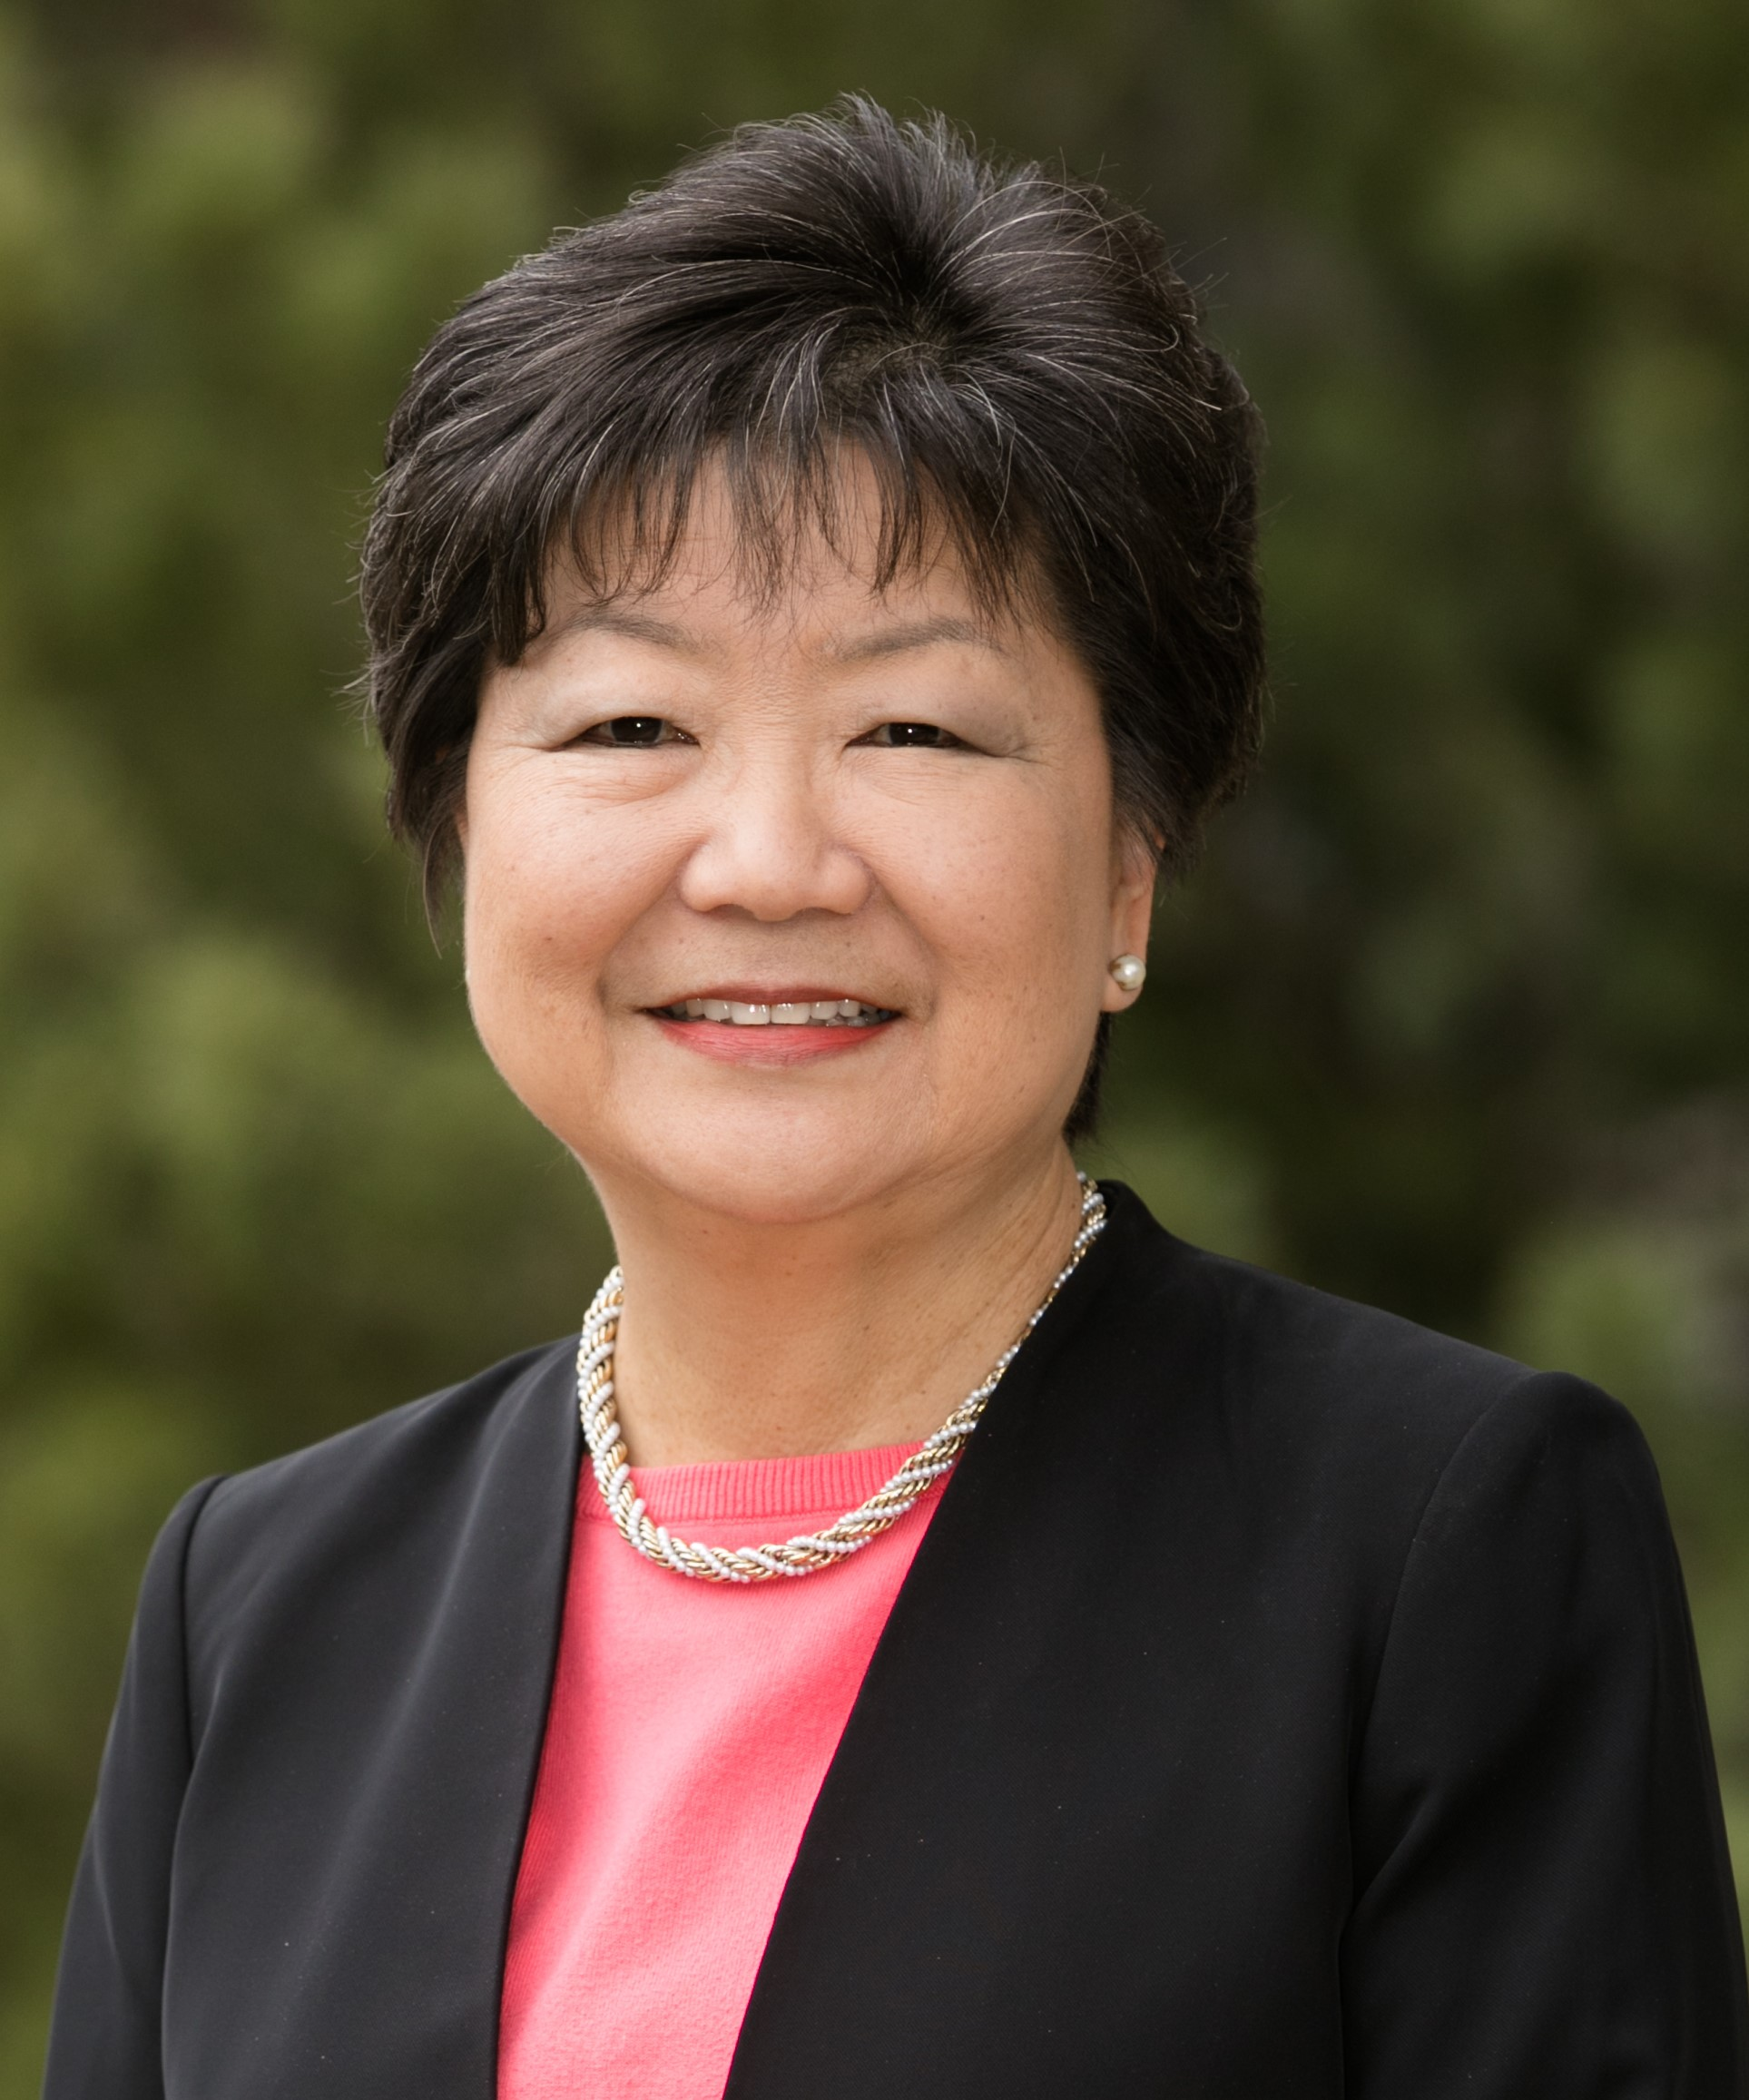 Fay Matsukage : 2018 Inductee to the Colorado Women's Hall of Fame and  Activist for Women and Asians in the Legal Profession